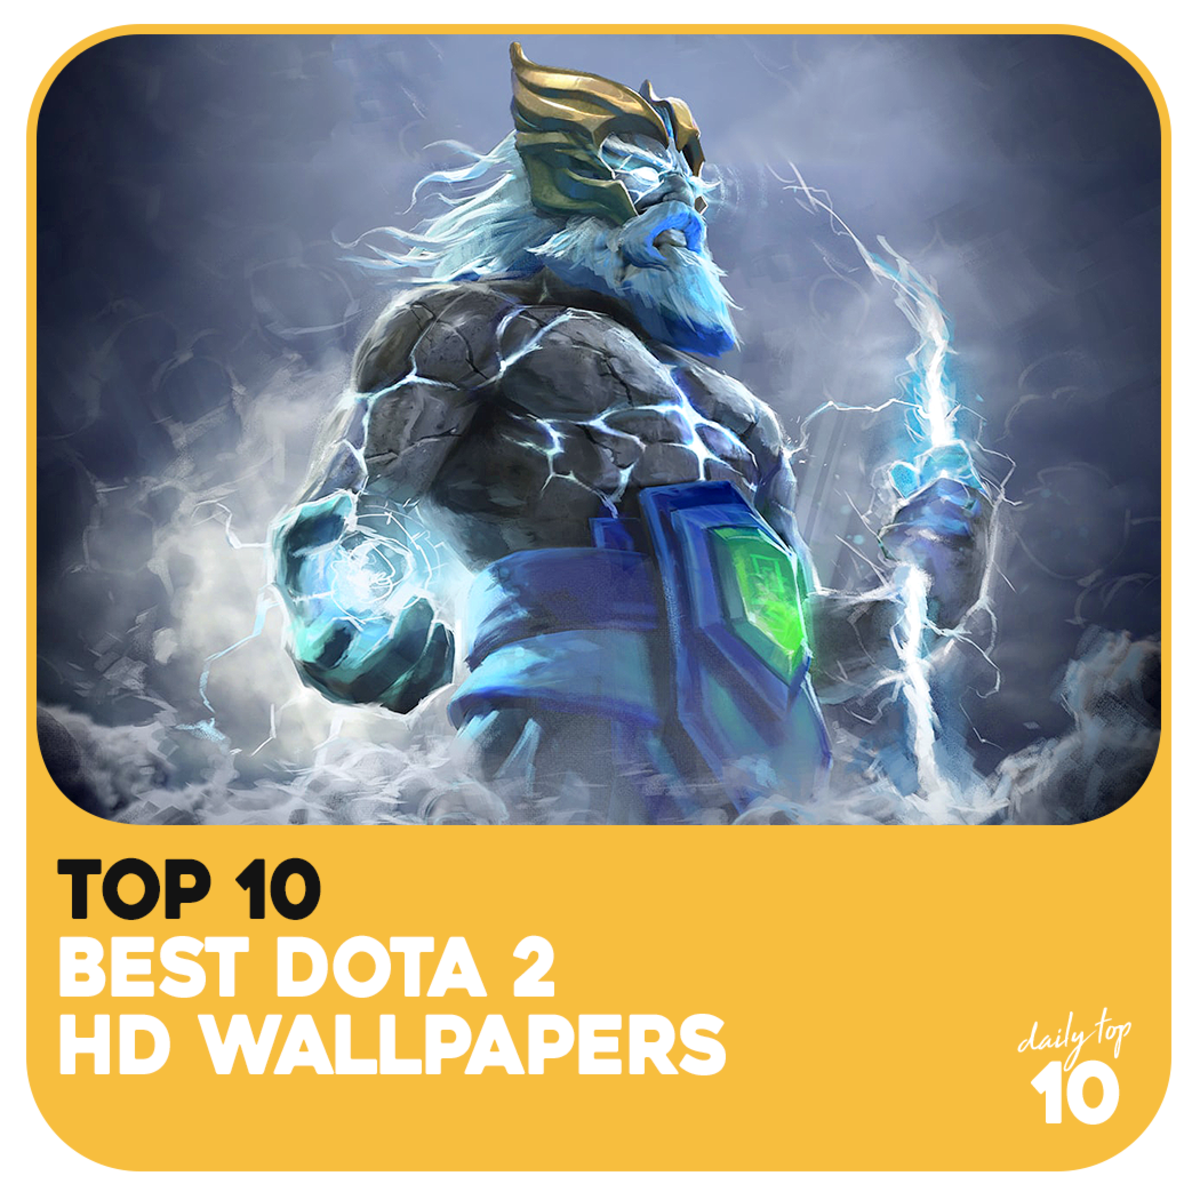 Top 10 Best Dota 2 Hd Wallpapers Every Dota 2 Player Should Use